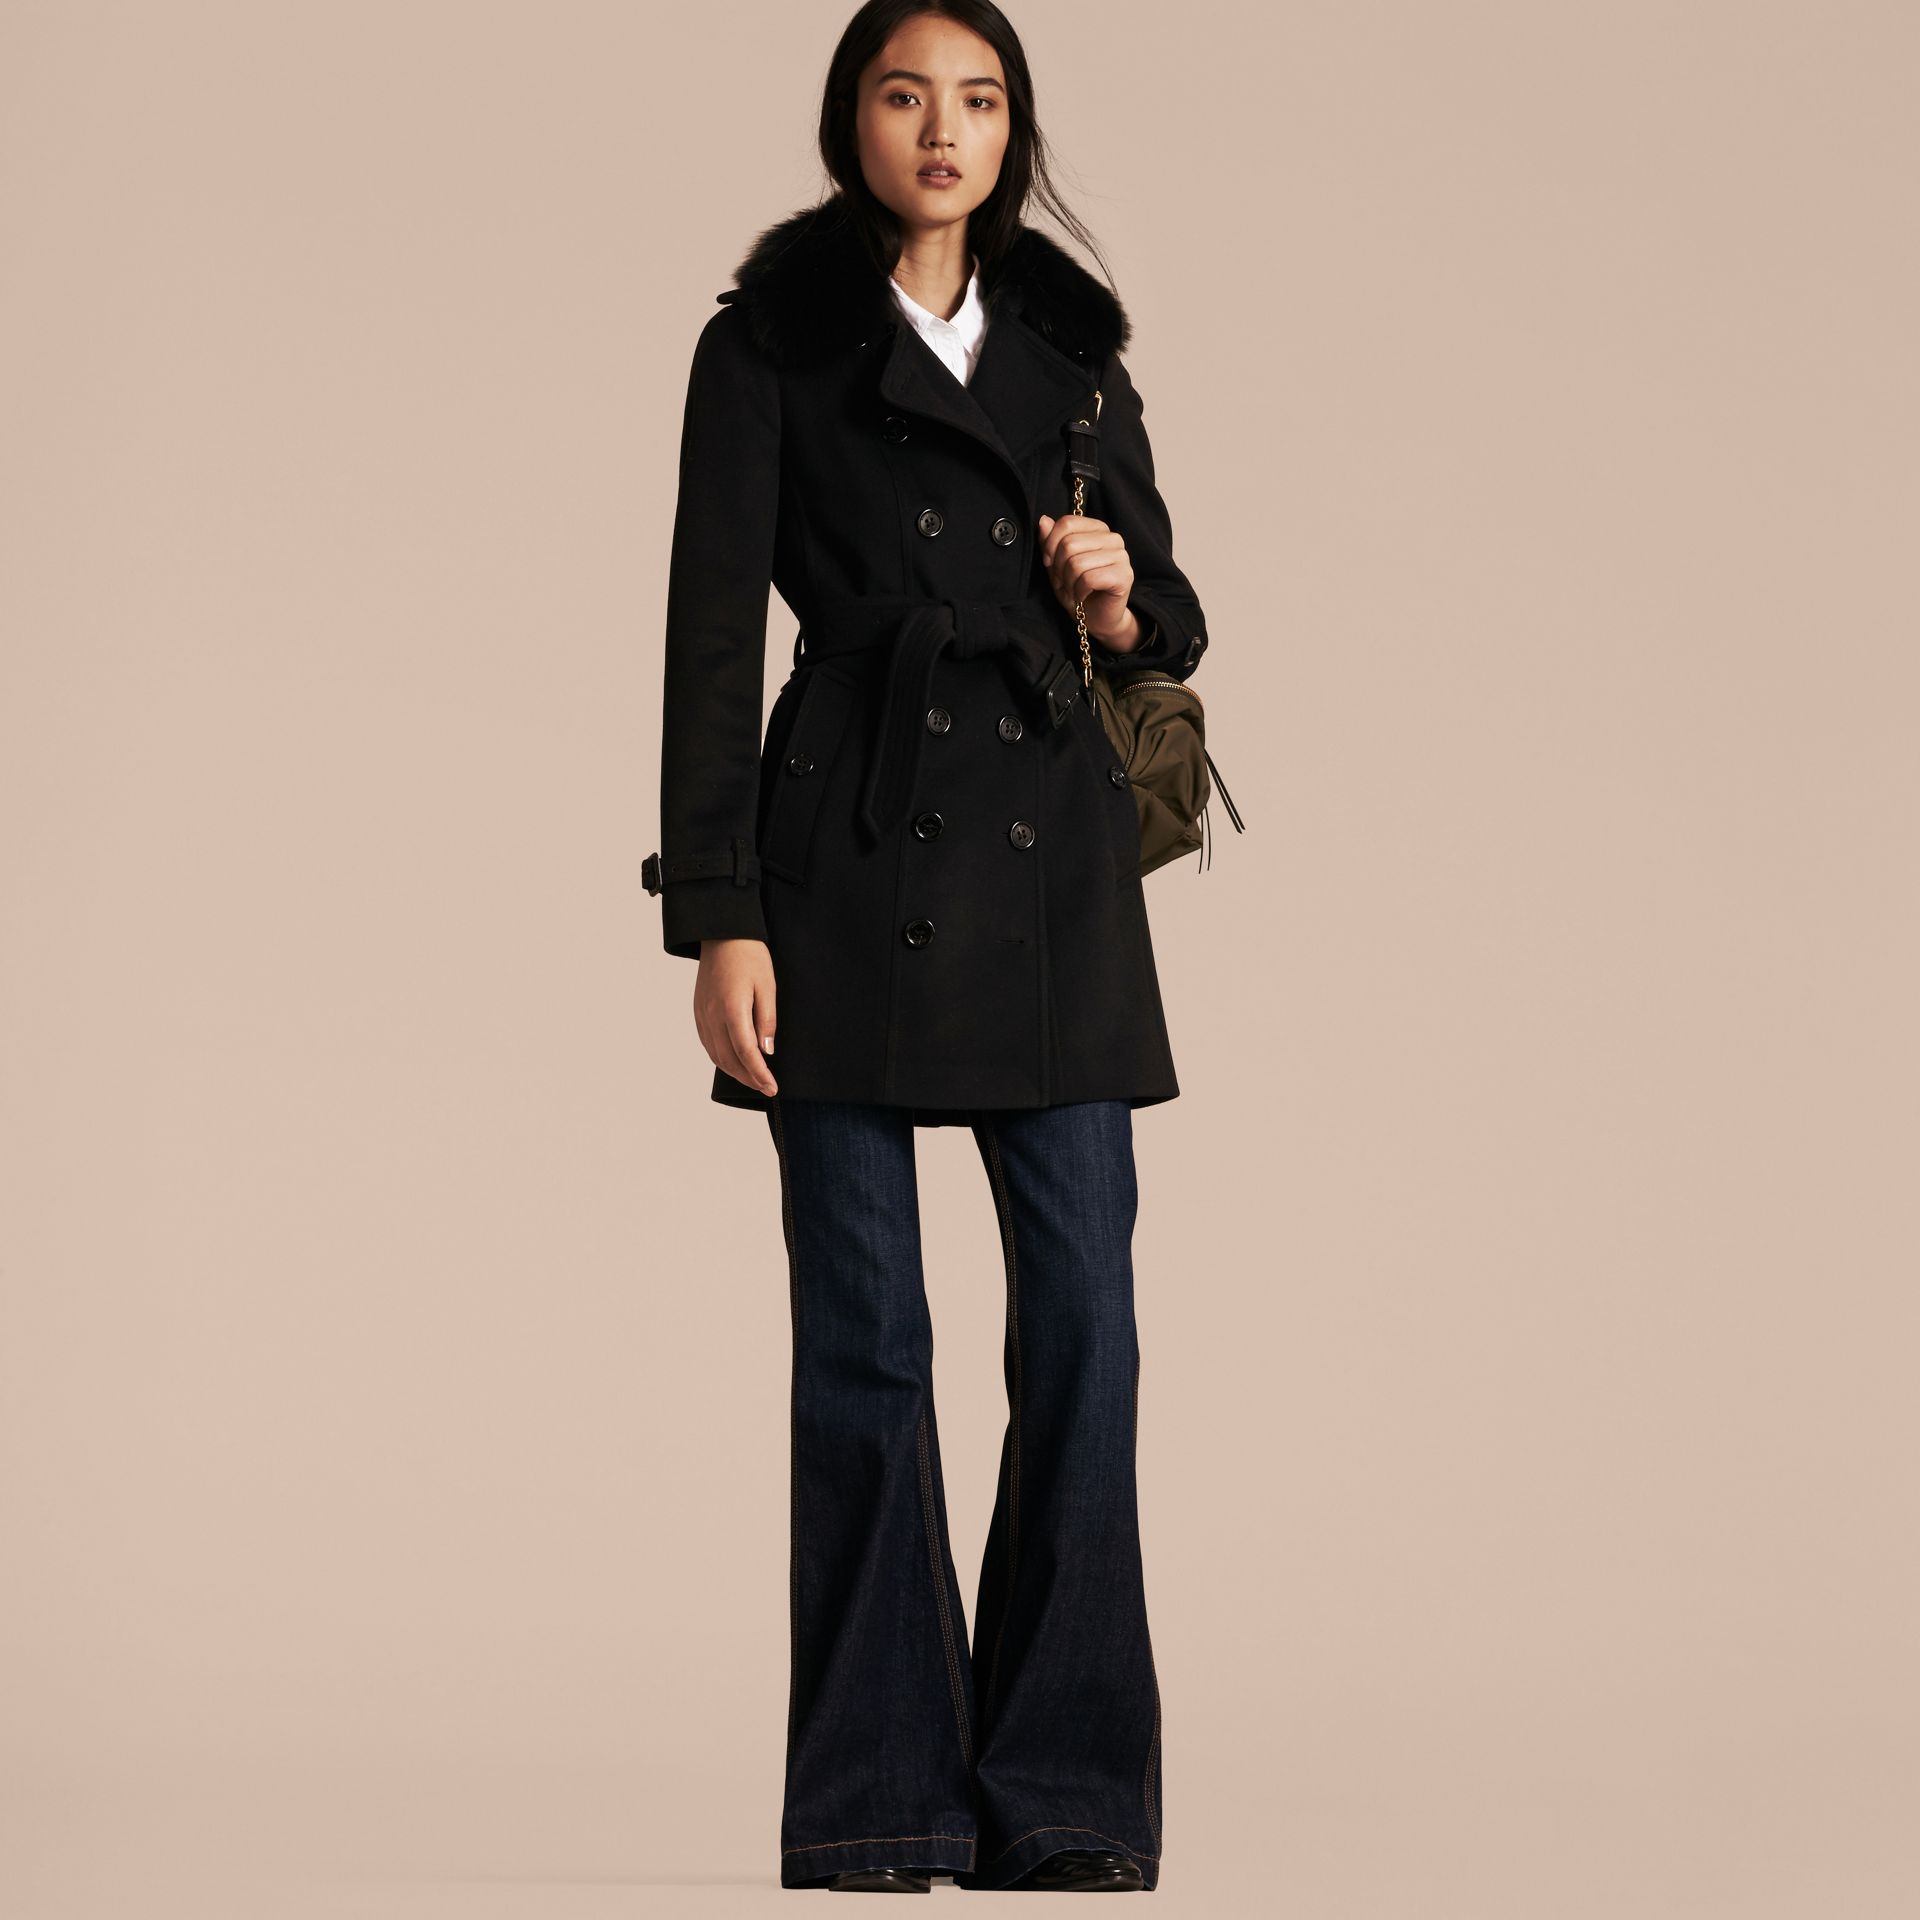 Wool Cashmere Trench Coat with Fur Collar in Black - Women | Burberry - gallery image 6